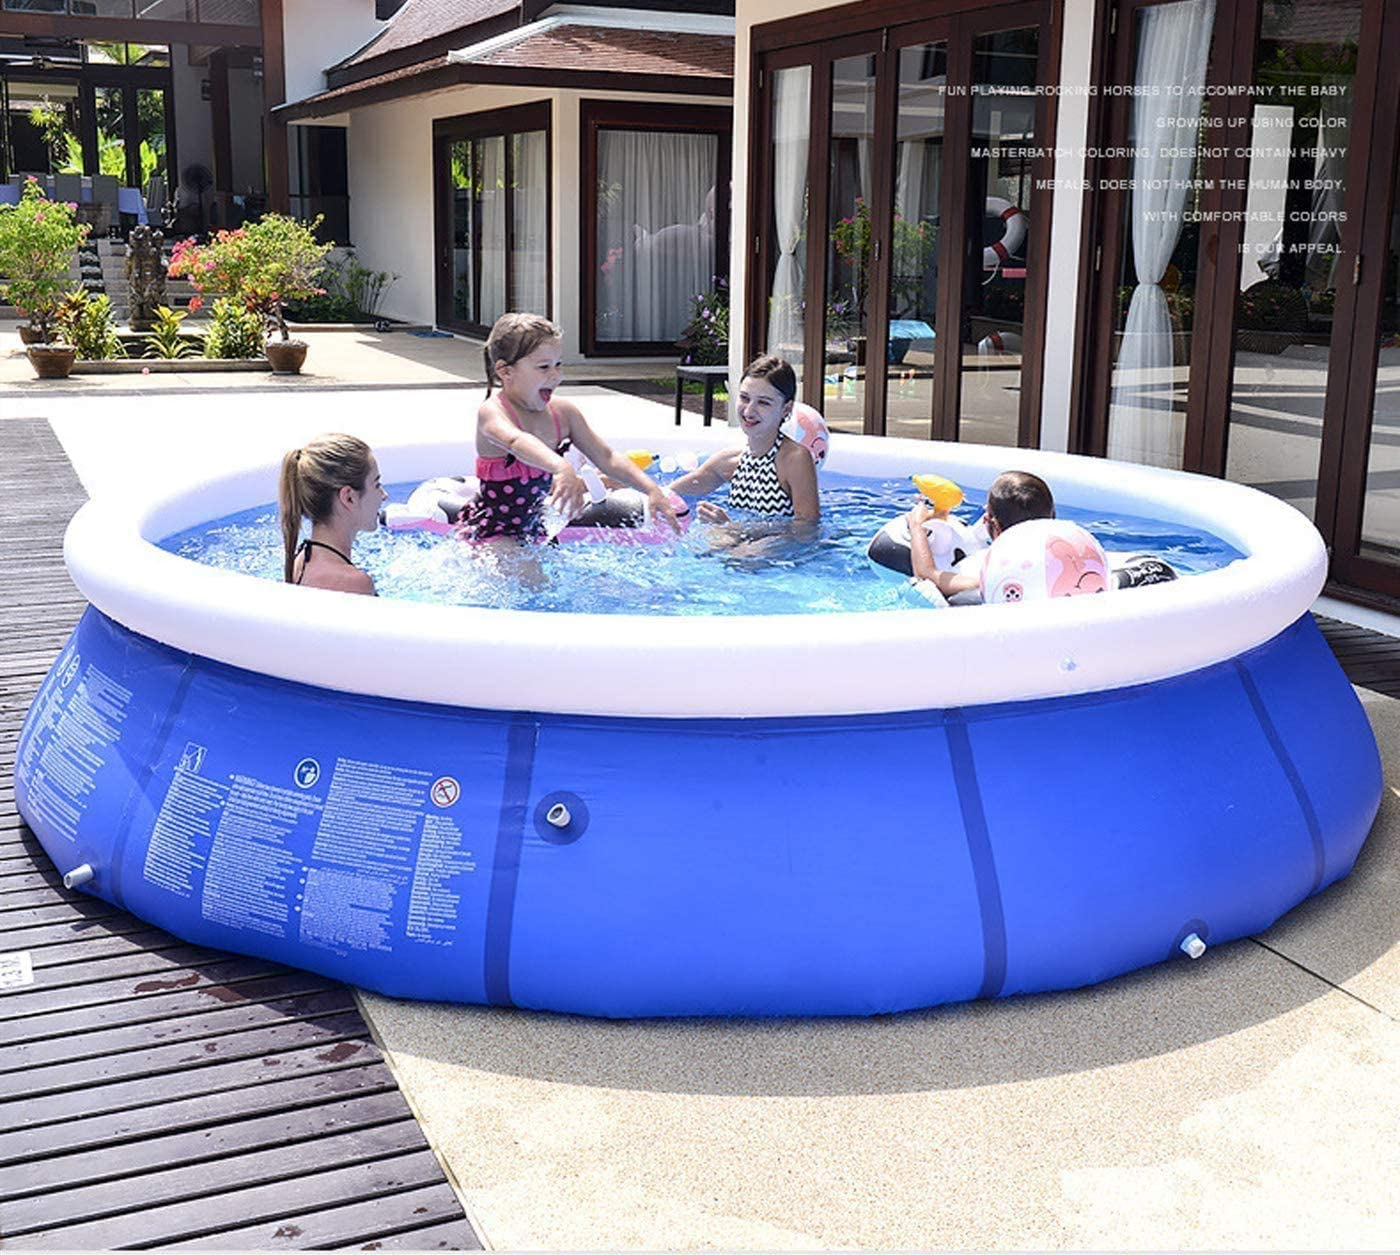 Creny Family Inflatable Swimming Pool 95 Diameter X 25 Height Quick Set Inflatable Pools Above Ground Pool For Kids And Adult Outdoor Garden Backyard Summer Water Party Garden Outdoor